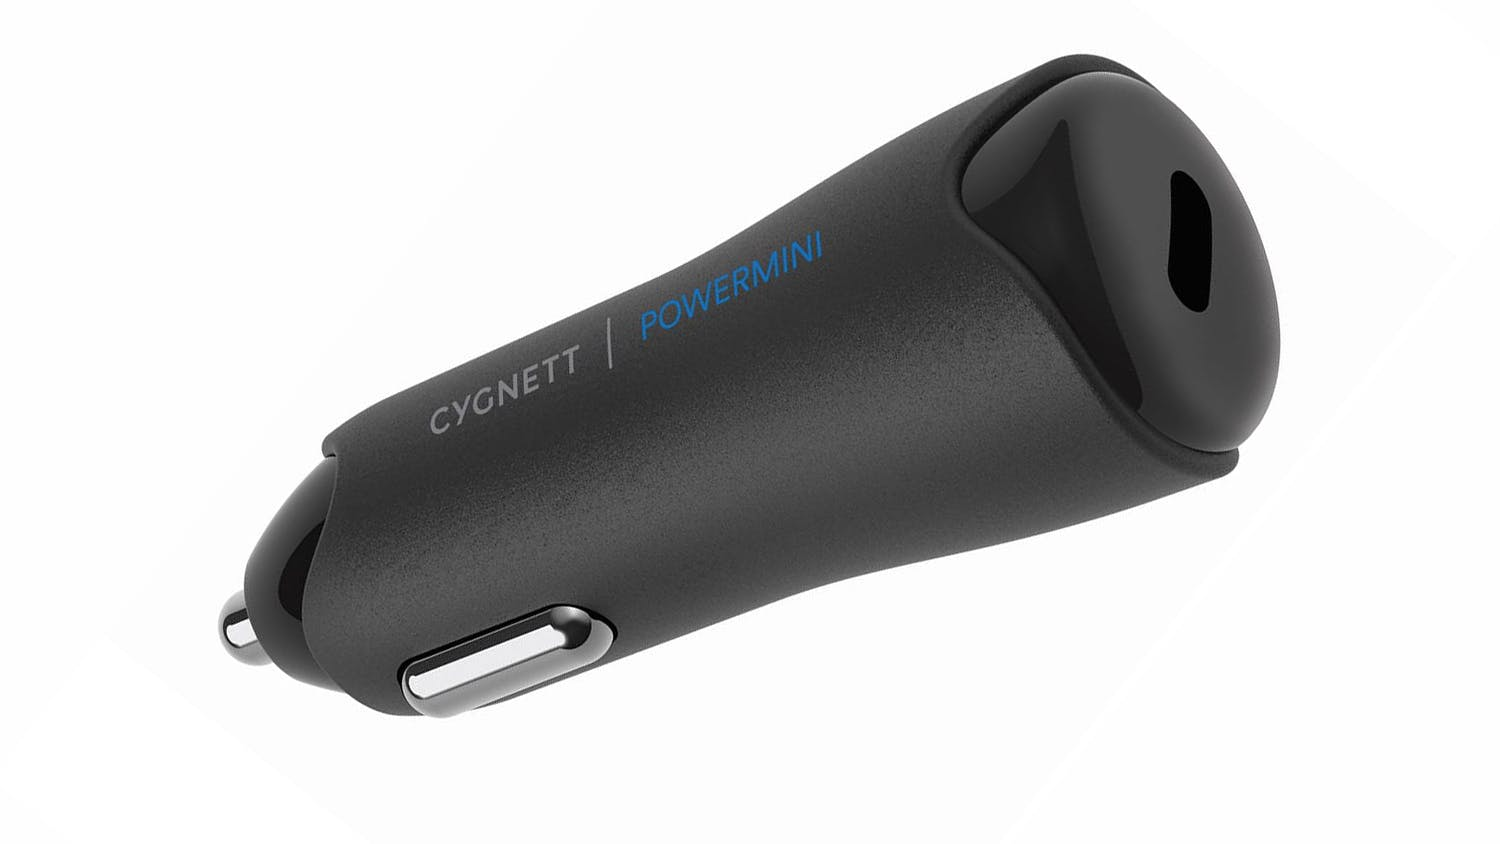 Cygnett PowerMini 36W USB-C Car Charger